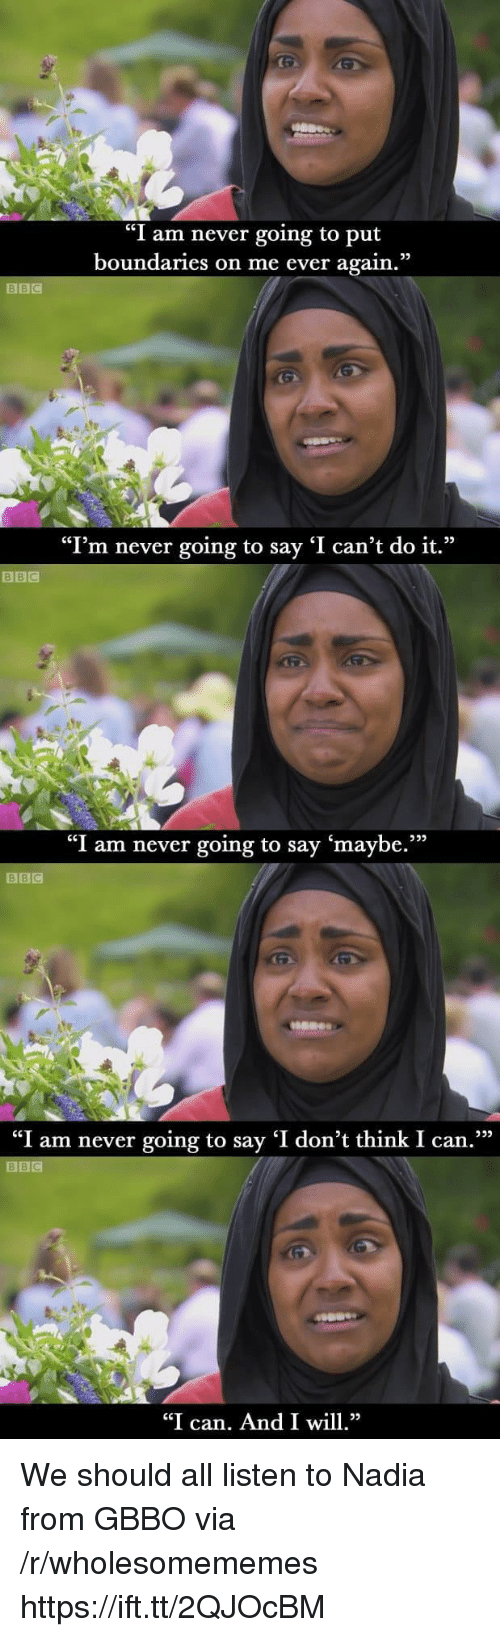 "Never, Bbc, and Can: ""I am never going to put  boundaries on me ever again.""  ""I'm never going to say 'I can't do it.""  BBIC  ""I am never going to say 'maybe.""""  BBC  ""I am never going to say 'I don't think I can.  BBC  ""I can. And I wl We should all listen to Nadia from GBBO via /r/wholesomememes https://ift.tt/2QJOcBM"